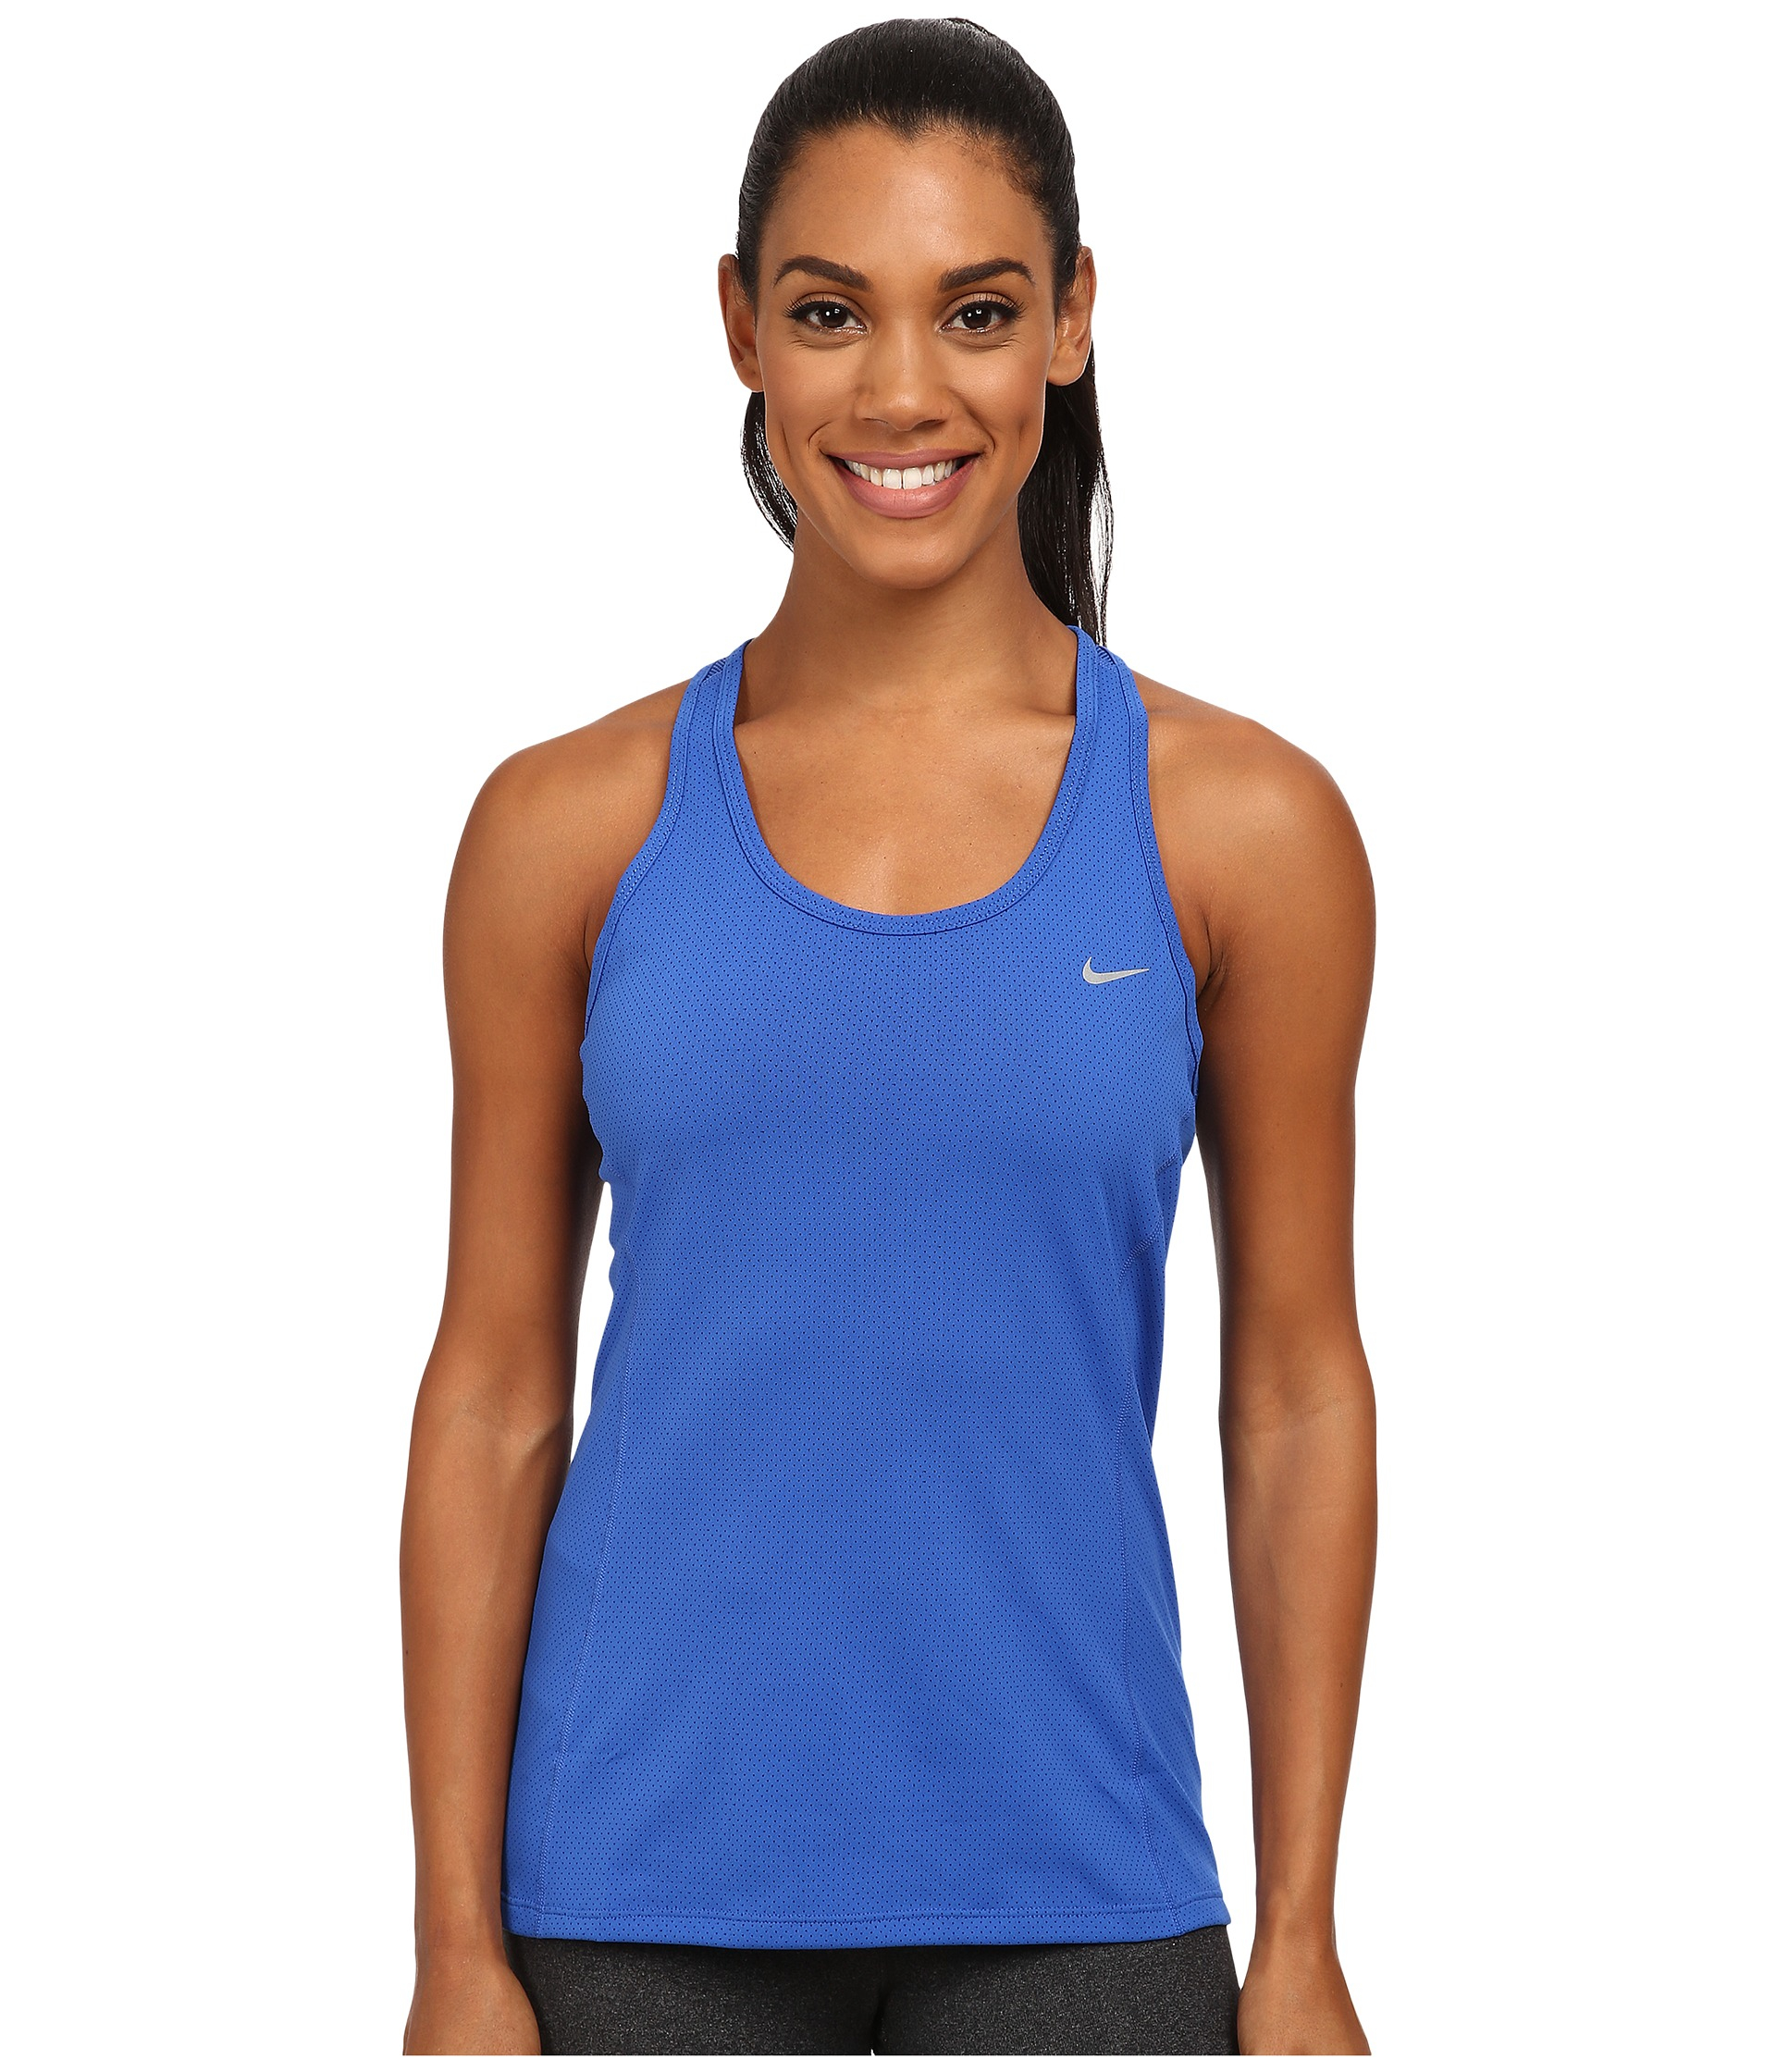 the quest van damme - Nike Dri-fit? Contour Tank Top in Blue | Lyst